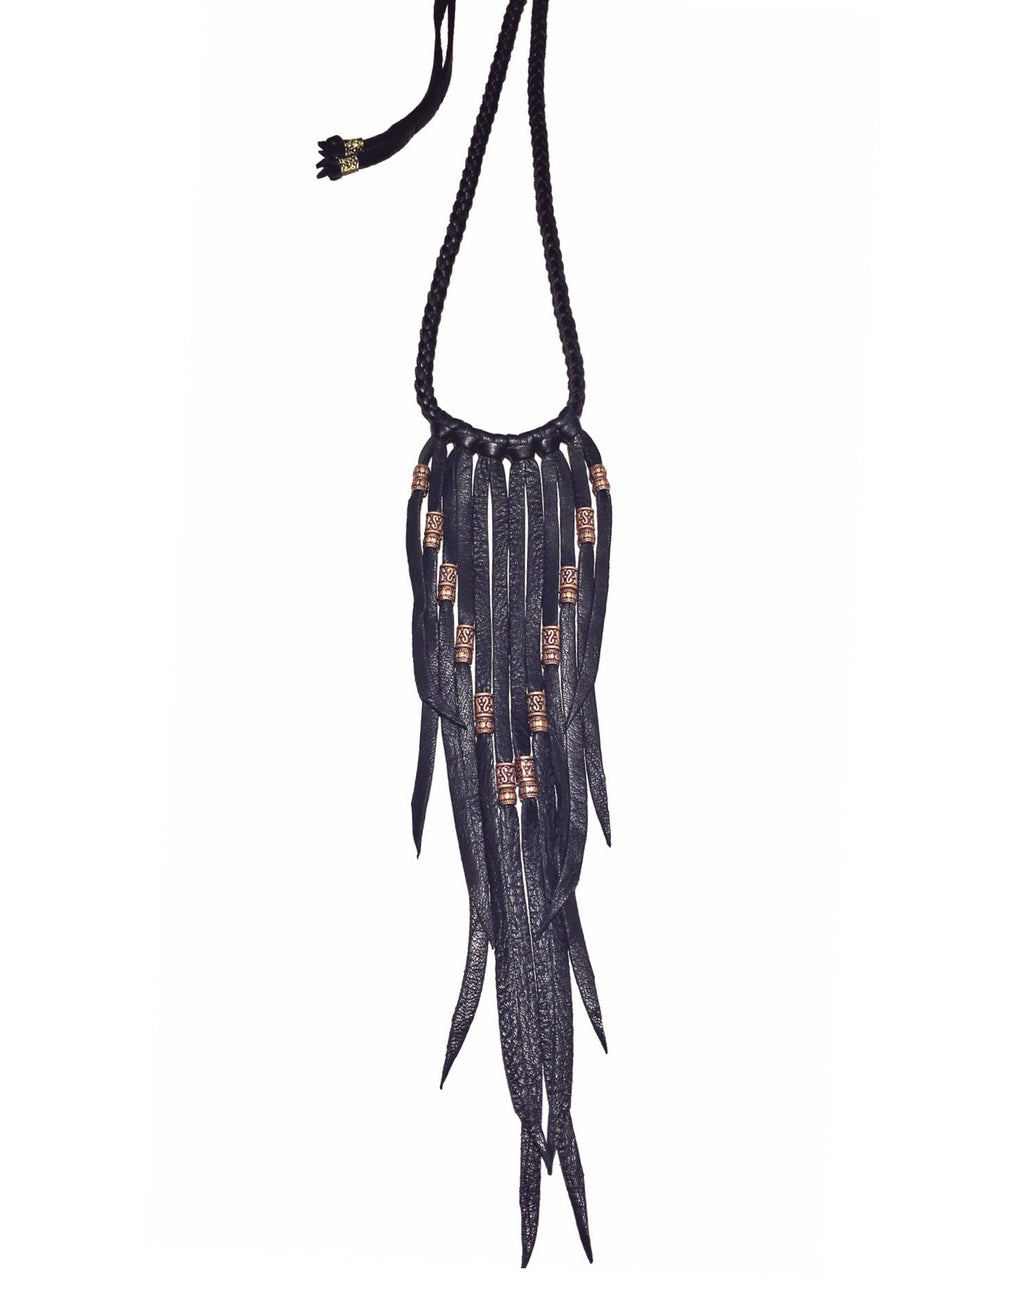 Cheyenne Fringe Necklace: Black